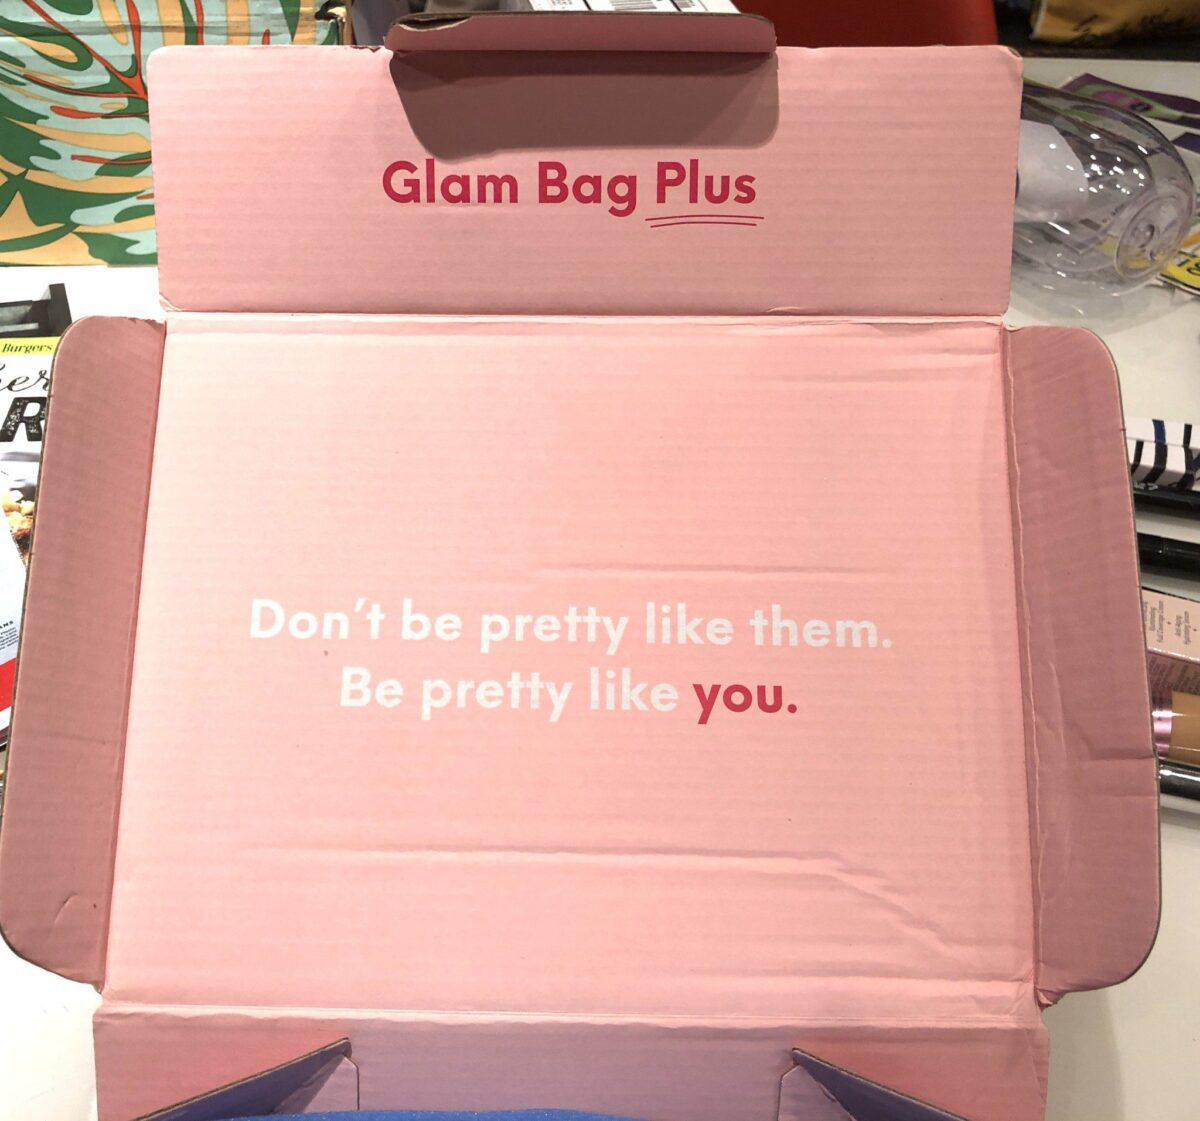 OPENING THE IPSY GLAM BAG PLUS BOX